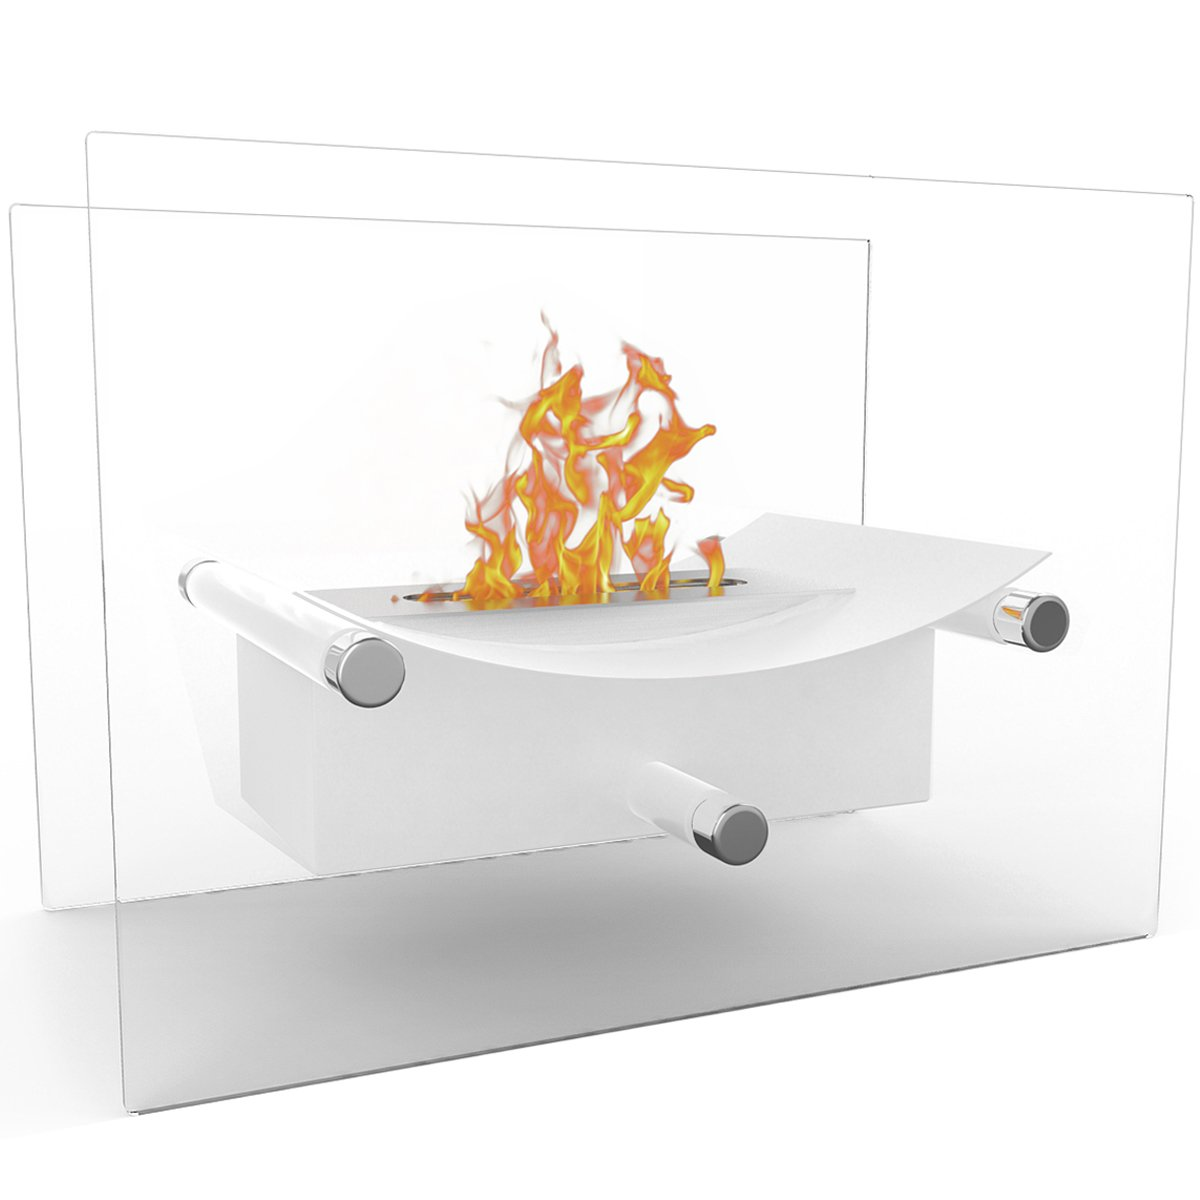 Regal Flame Arkon Ventless Indoor Outdoor Fire Pit Tabletop Portable Fire Bowl Pot Bio Ethanol Fireplace in White - Realistic Clean Burning like Gel Fireplaces, or Propane Firepits by Regal Flame